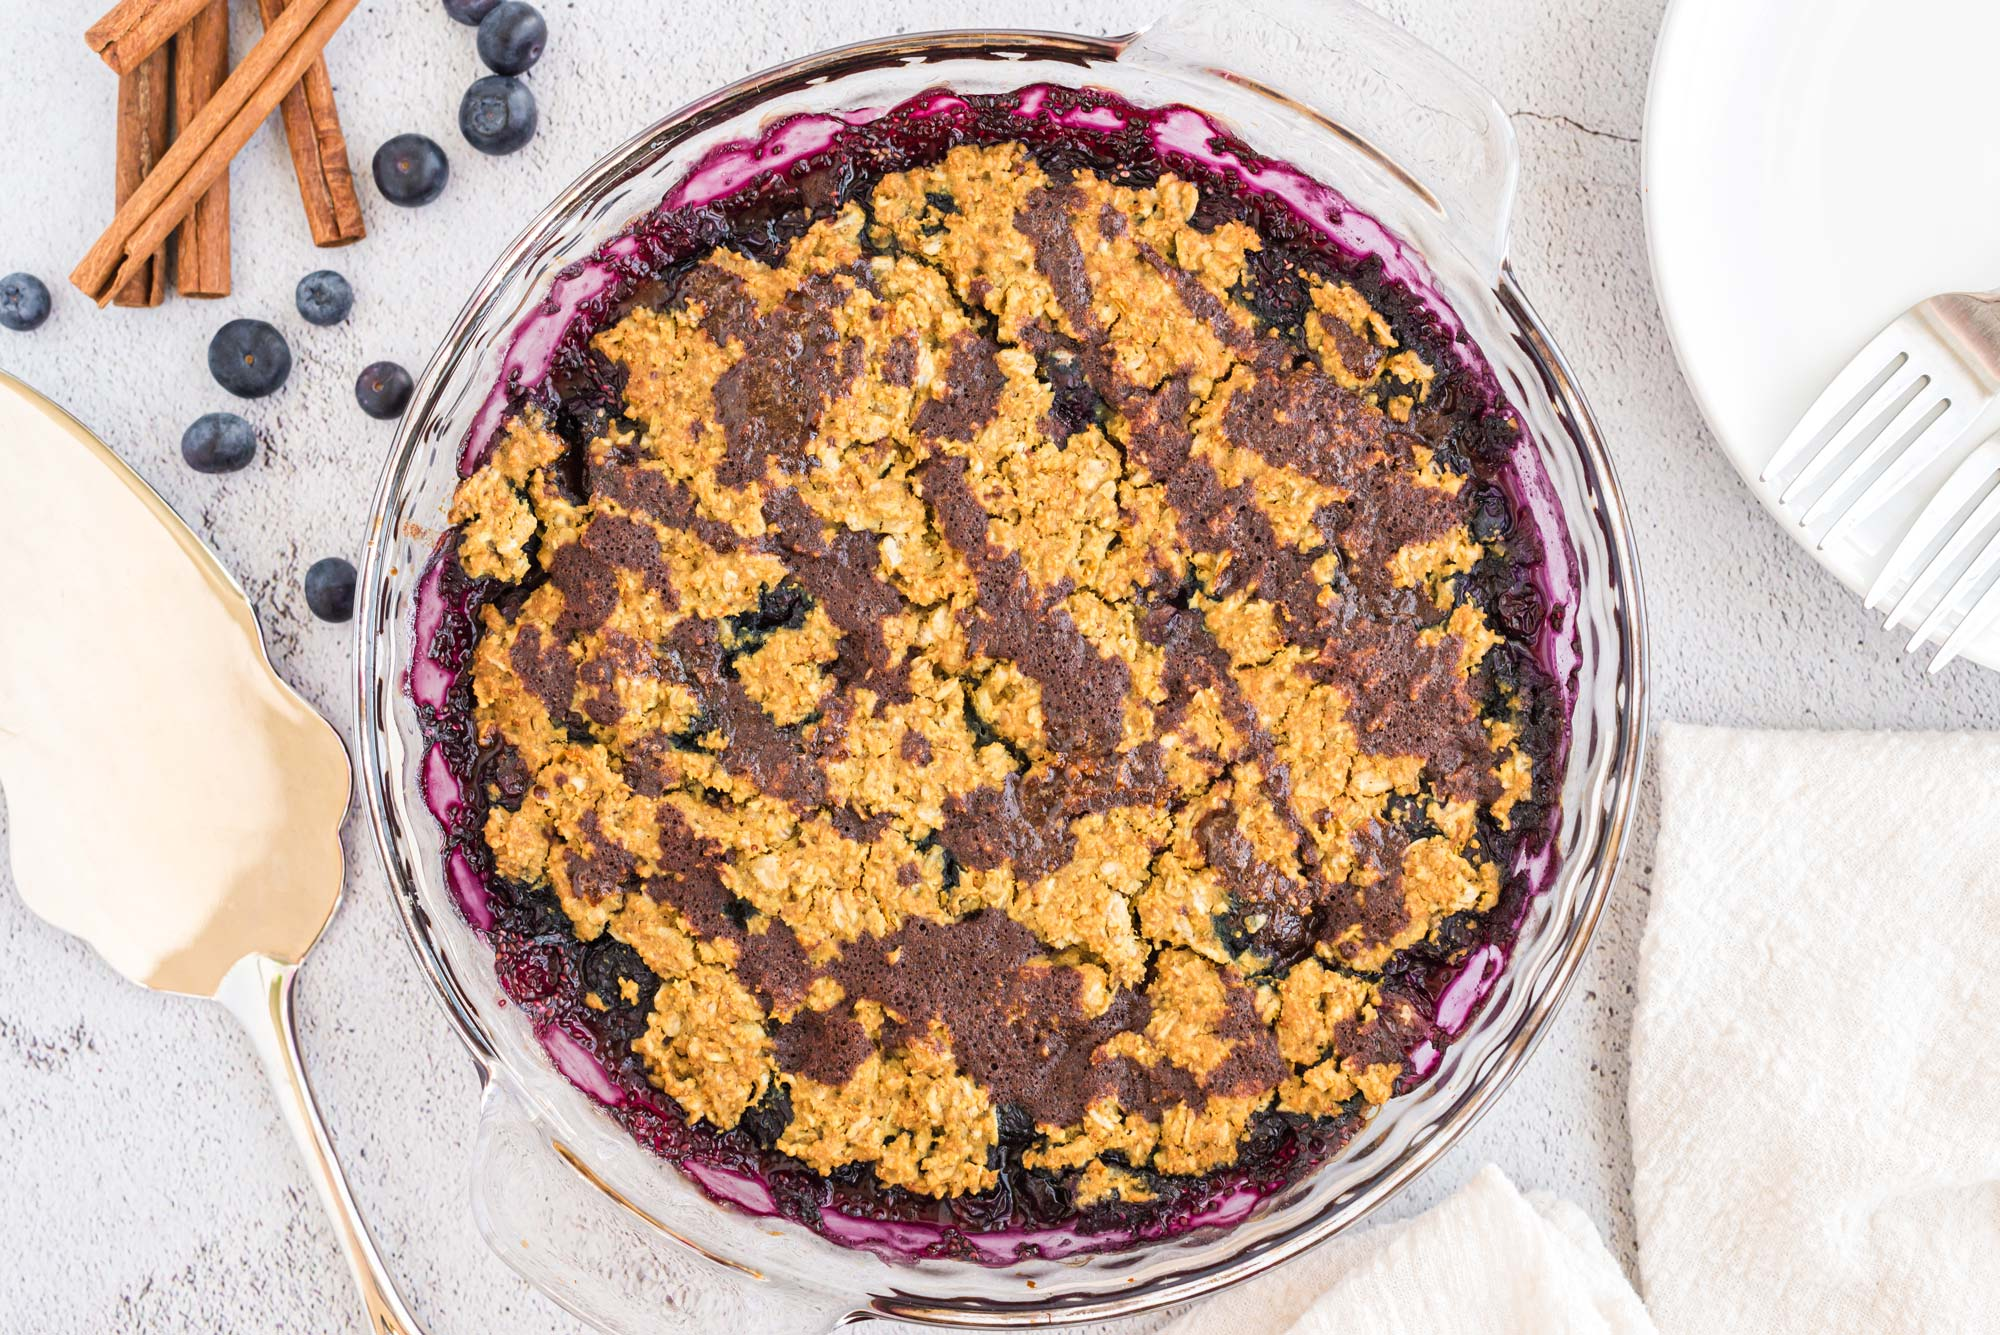 Blueberry chia oat crumble